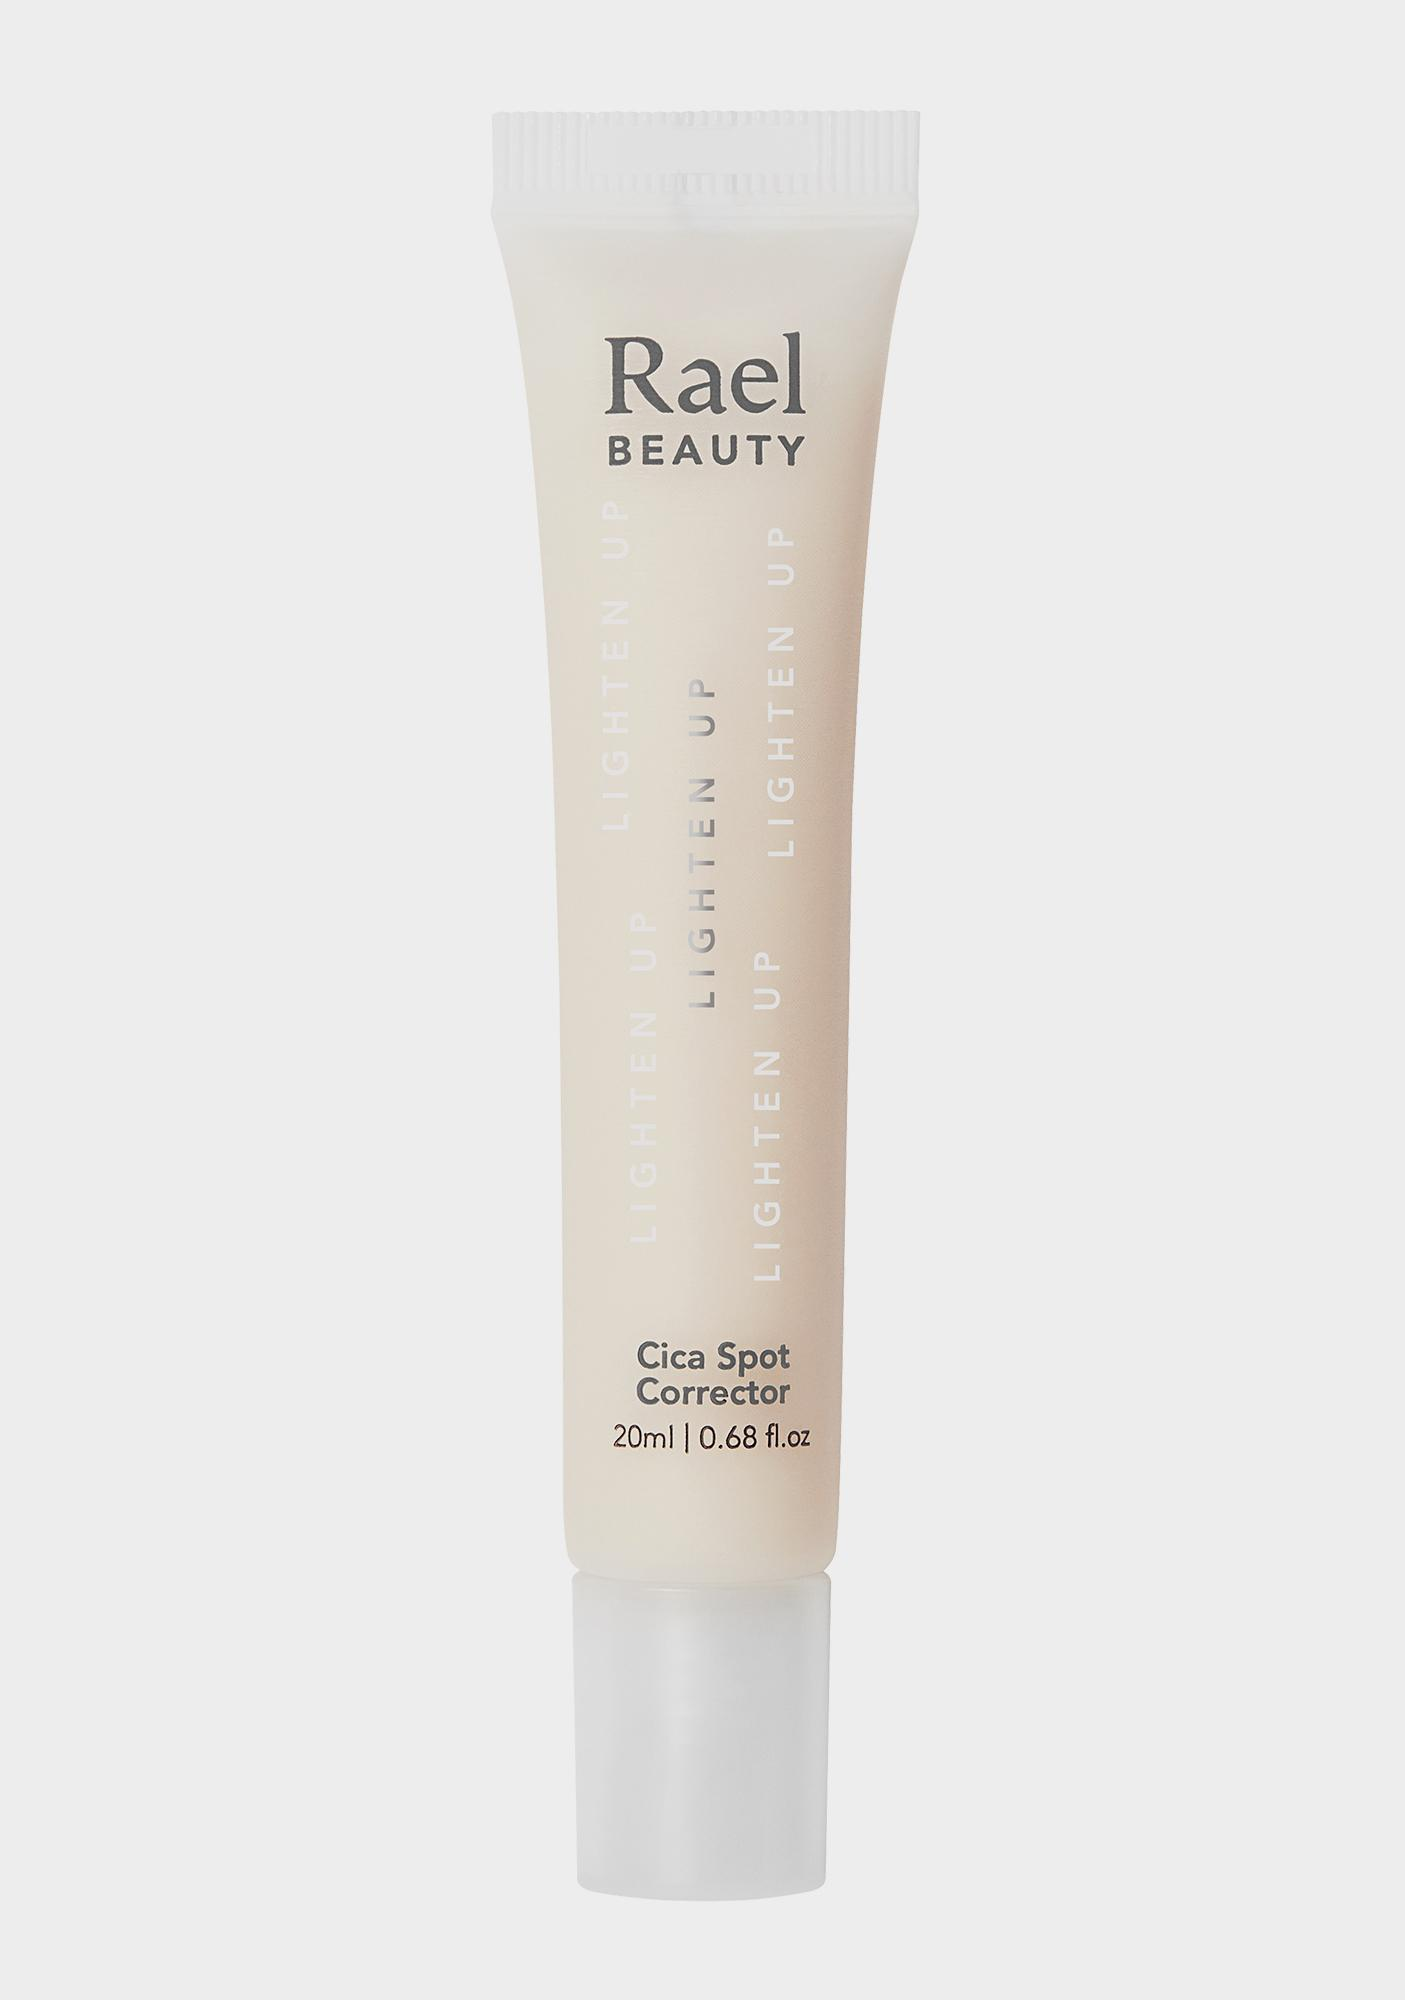 Rael Lighten Up Cica Spot Corrector